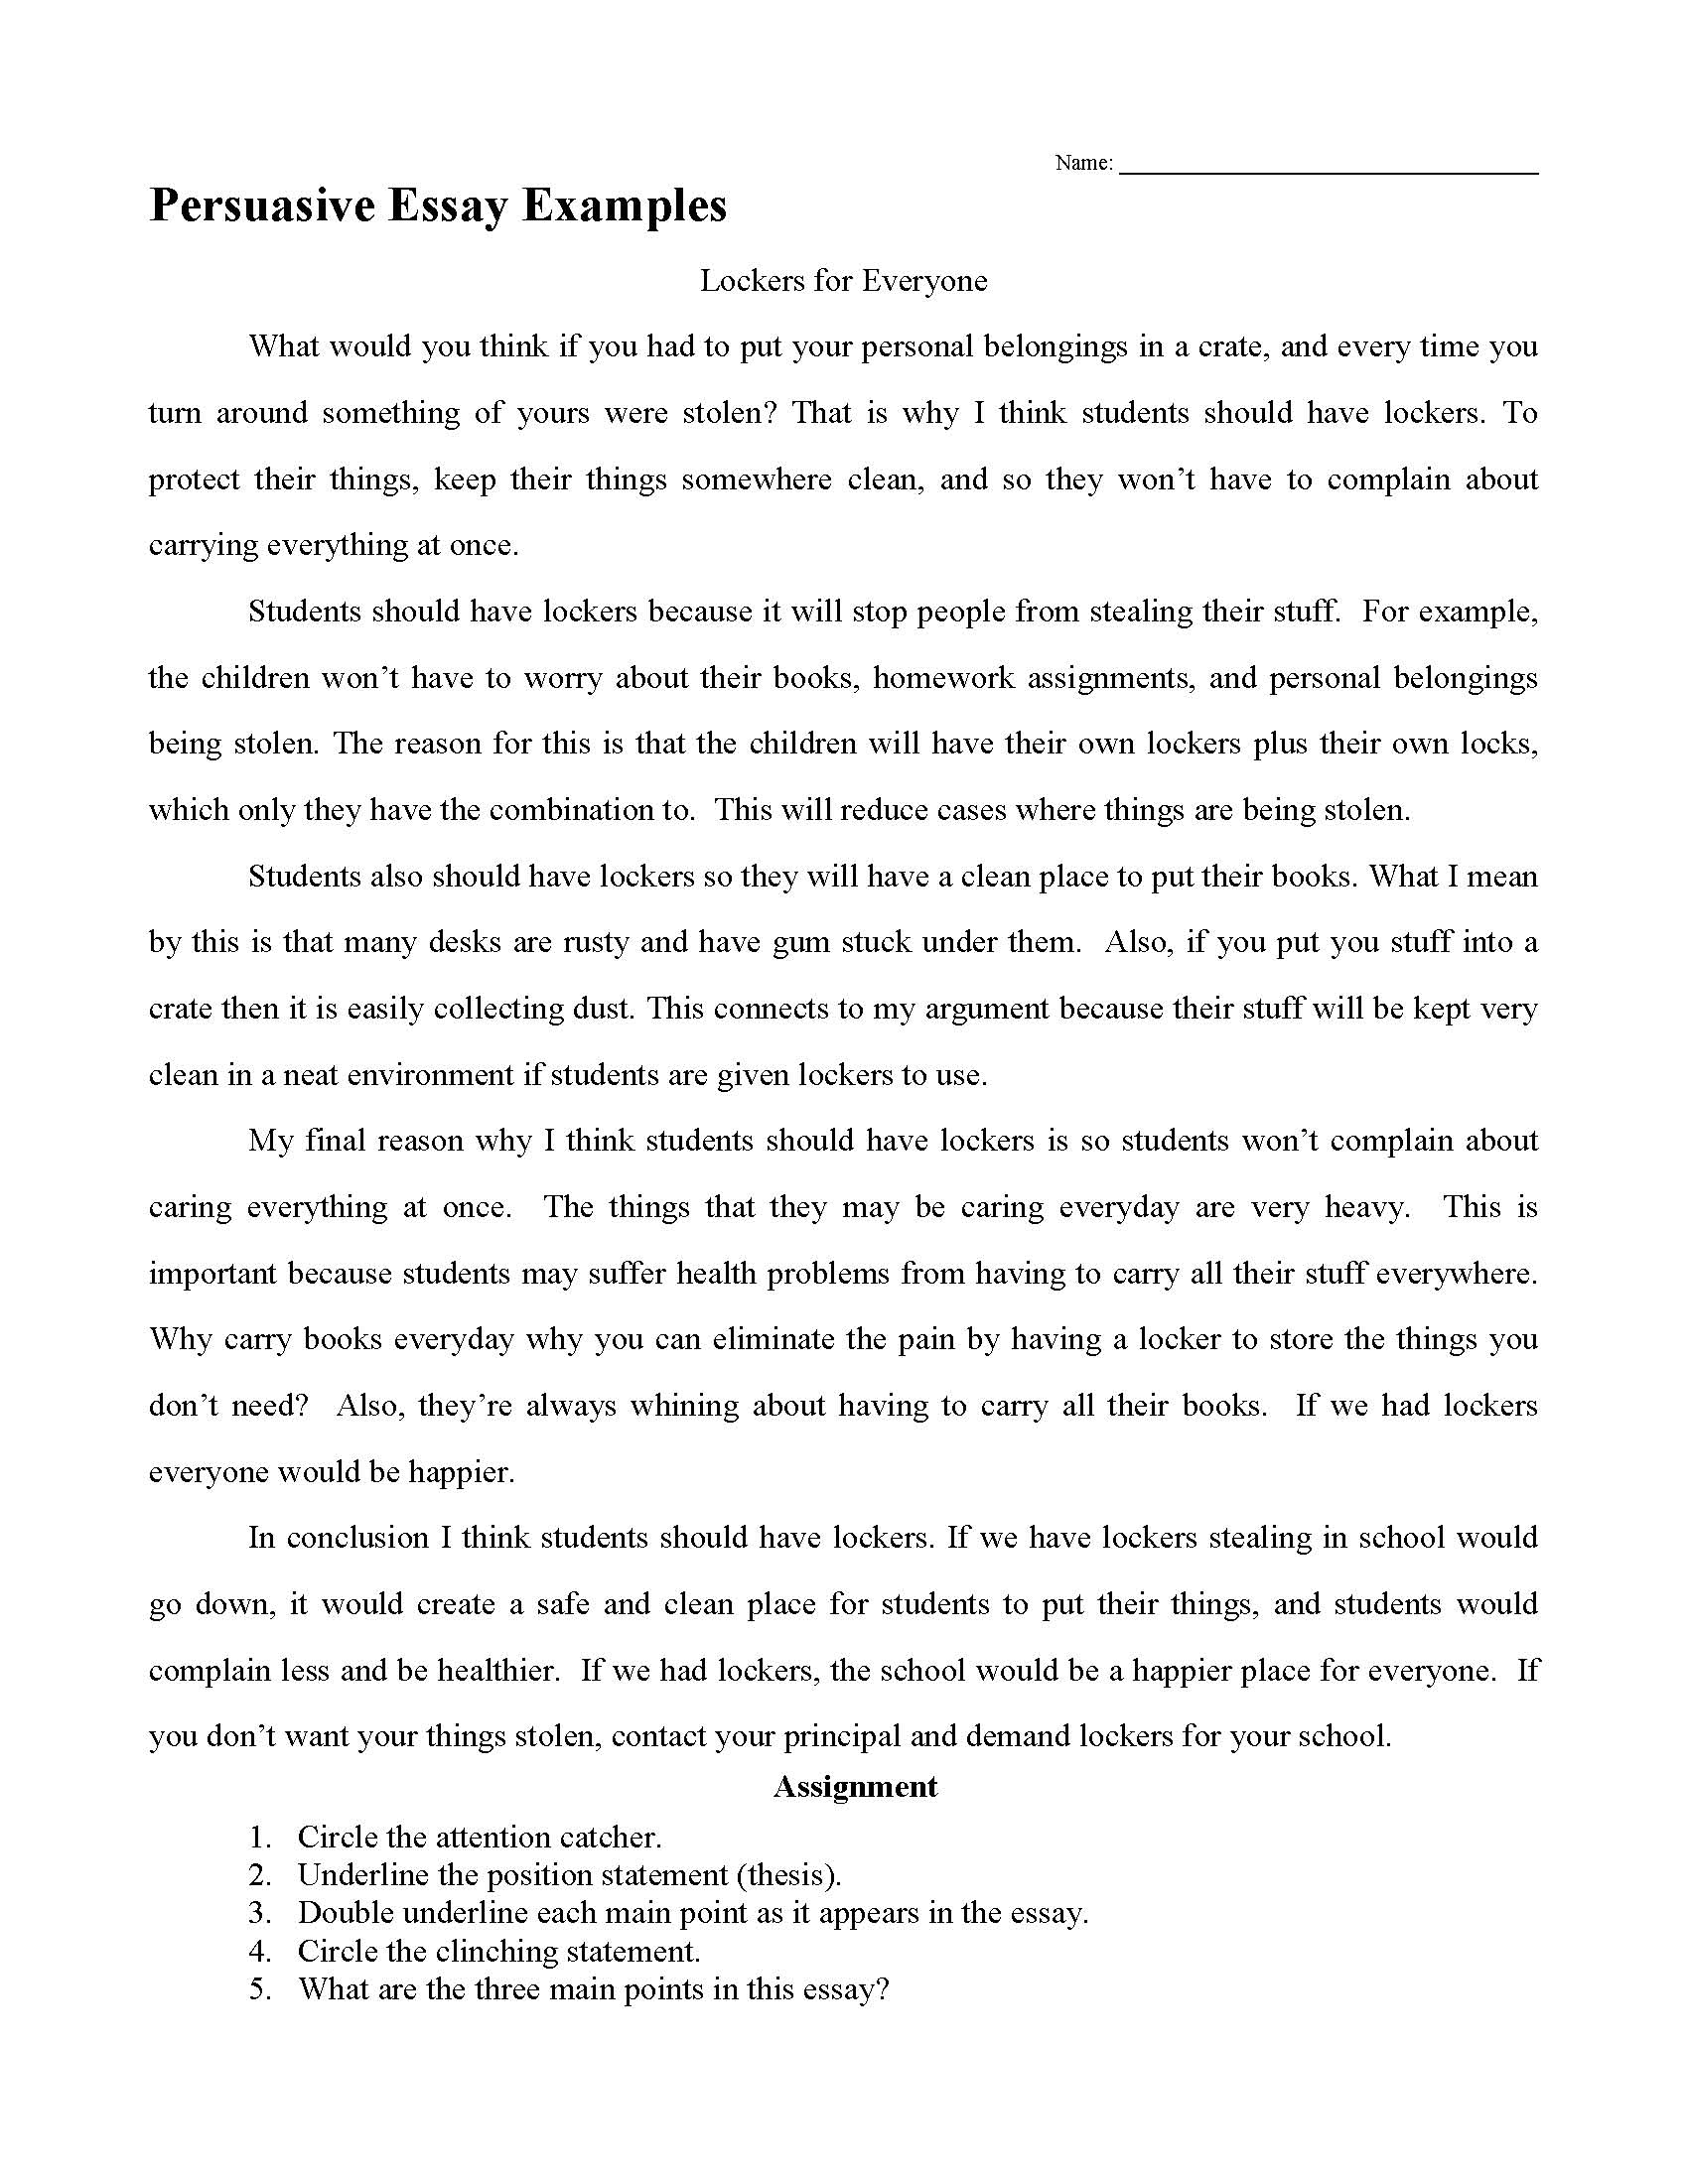 001 Essay Example Persuasive Examples How To Write Outstanding A For Middle Schoolers Ap Lang In Spanish Full